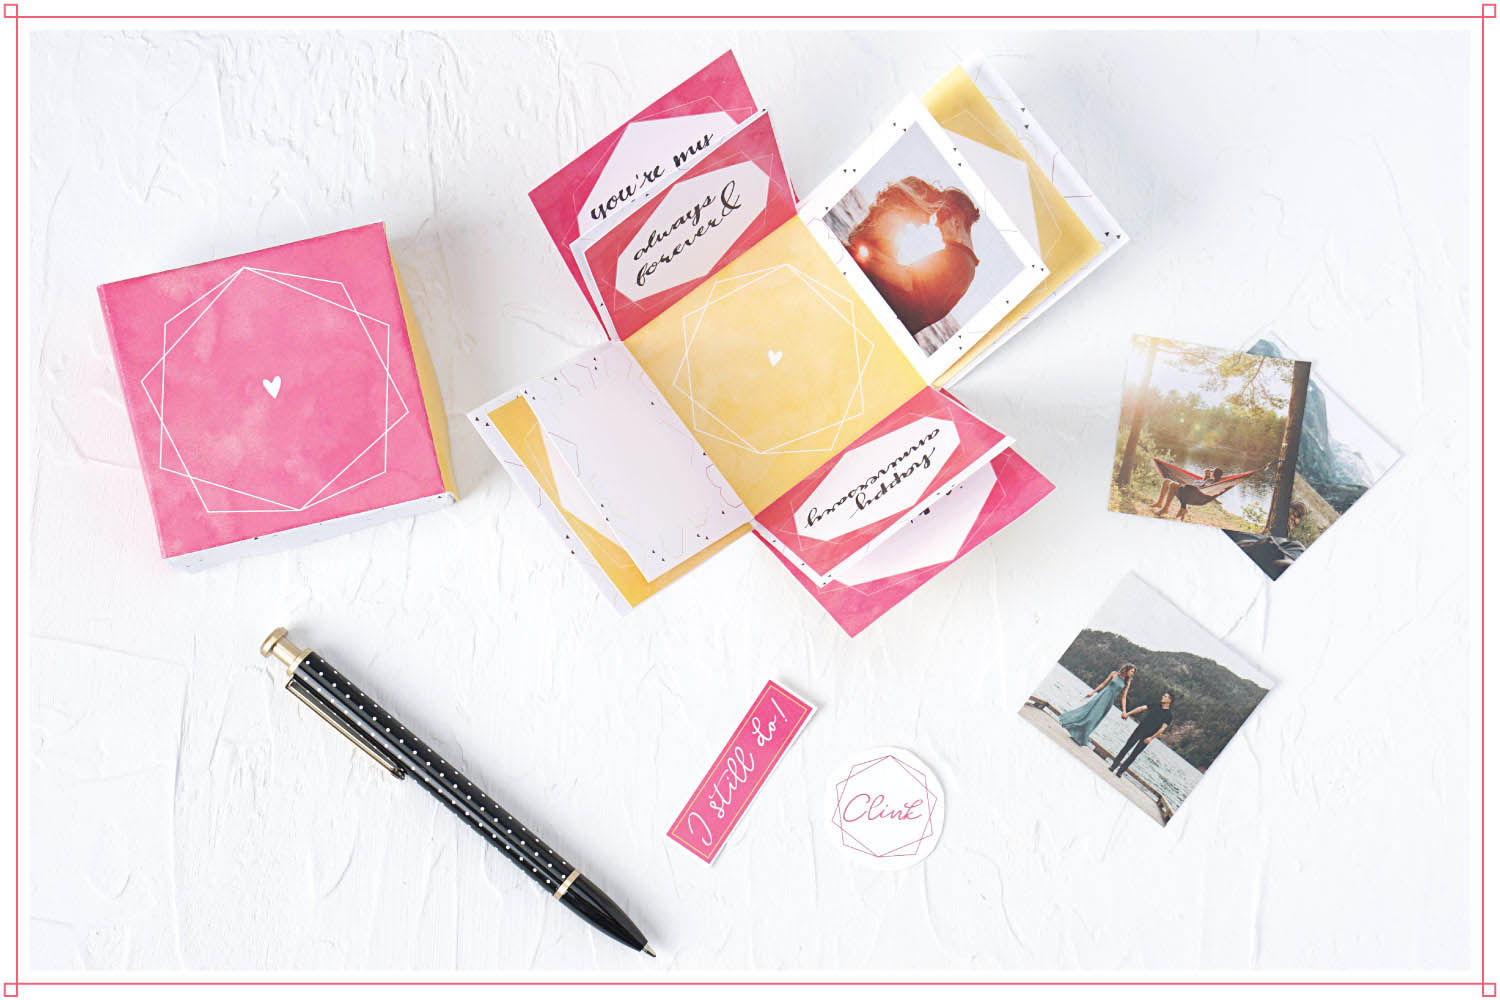 Pen, photos, and paper embellishments cut from the free 3d explosion box printable card